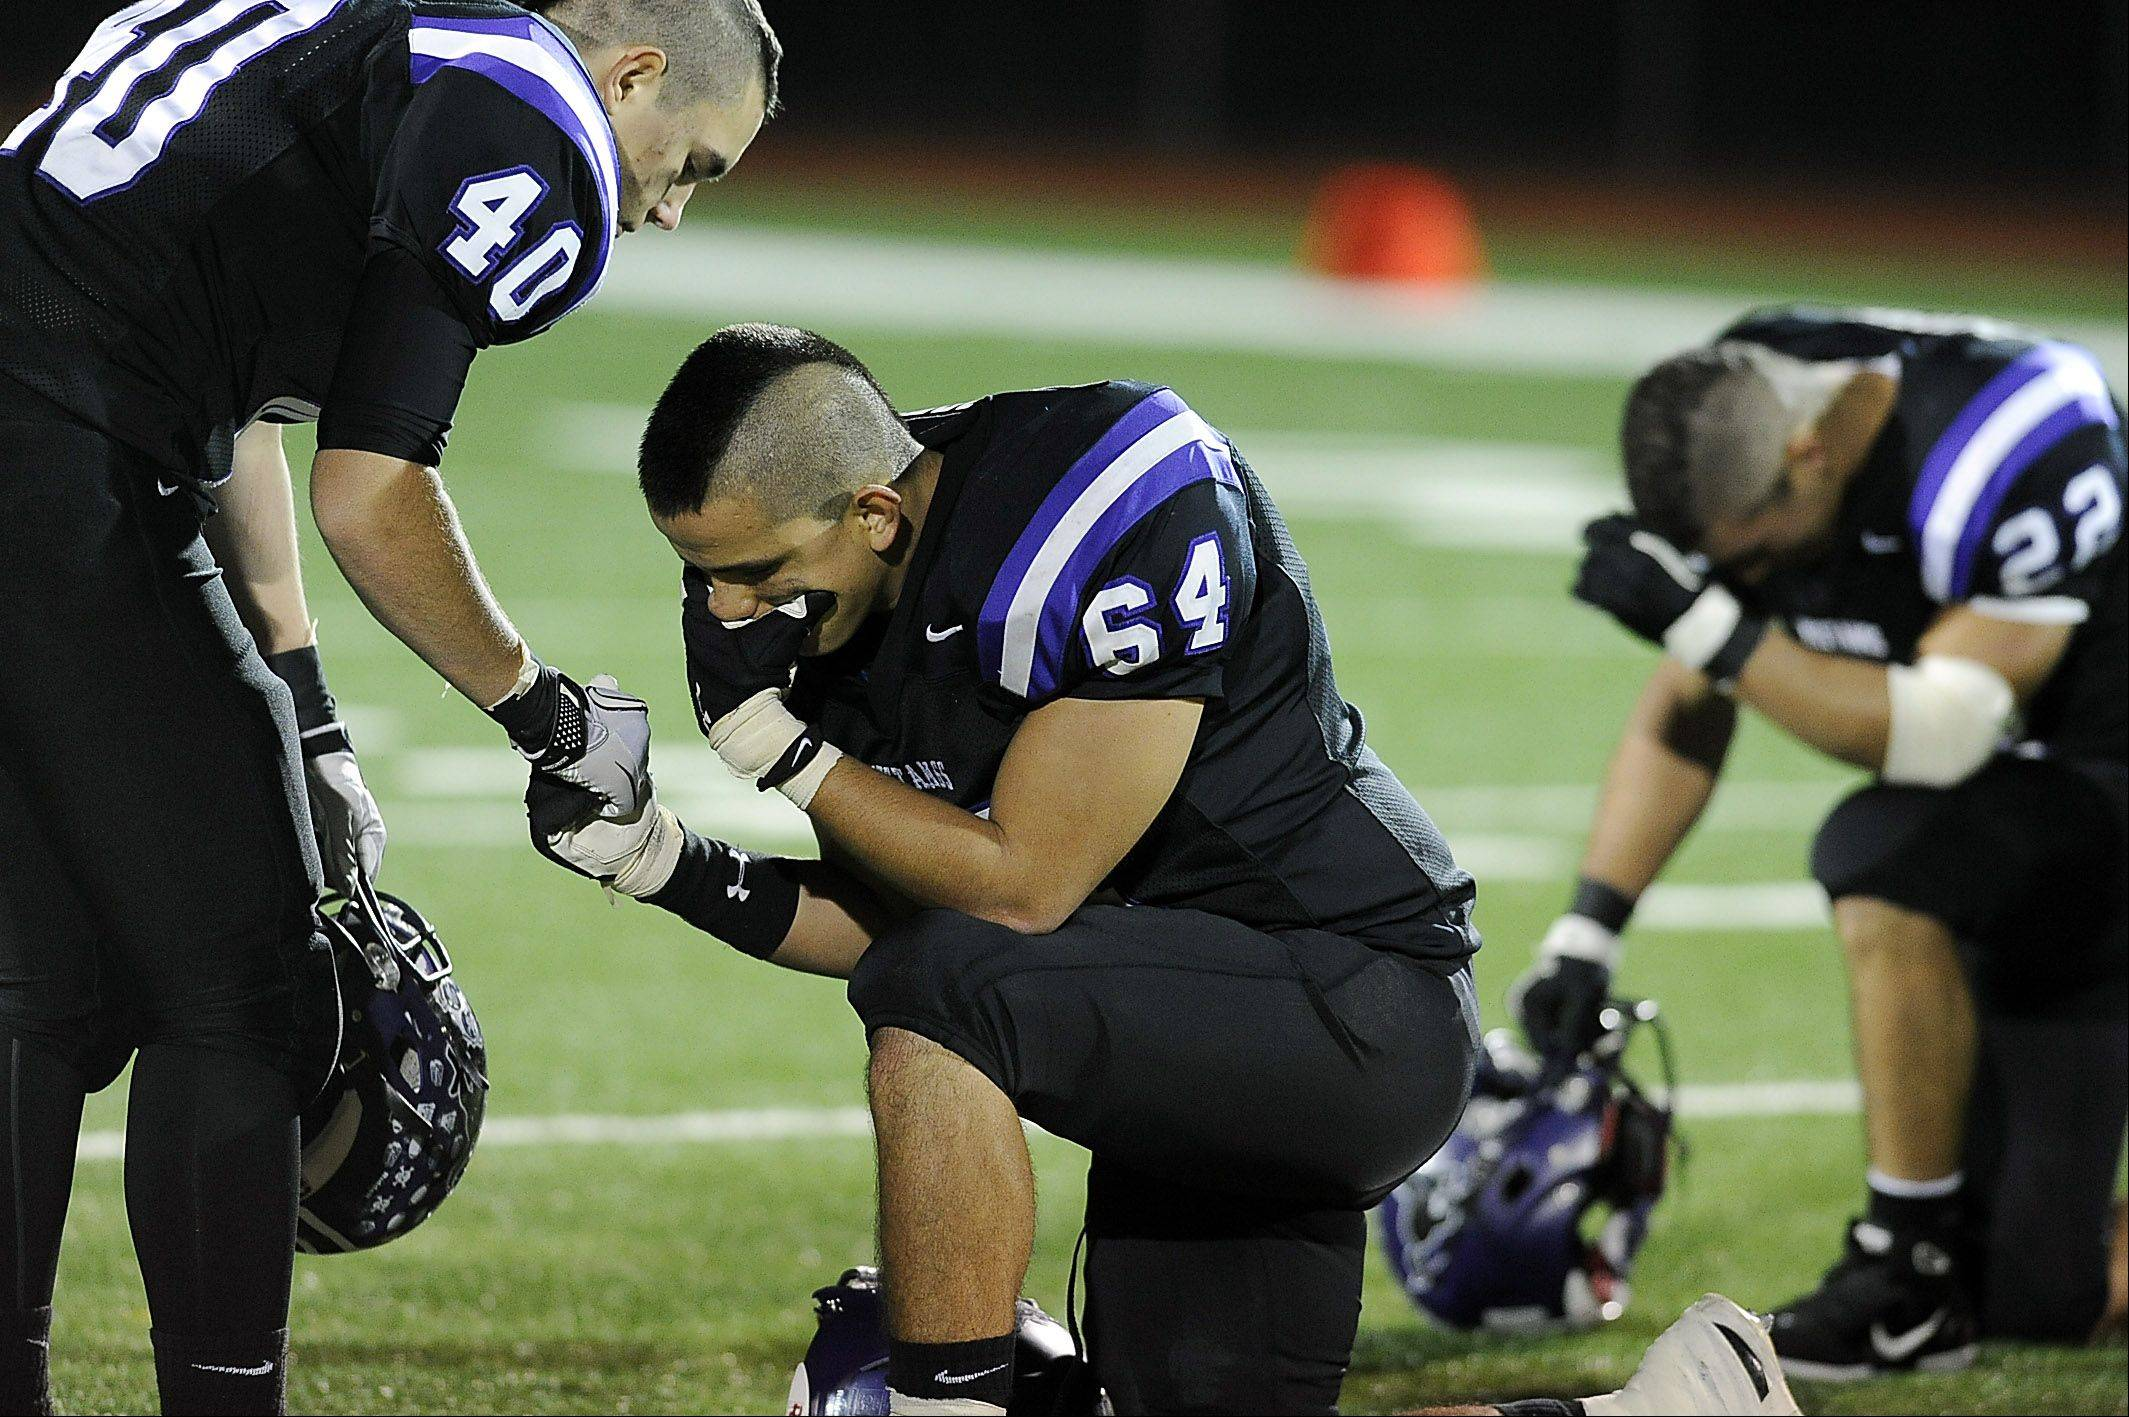 Rolling Meadows George Someris consoles with Raul-Alba Cortez after Rolling Meadows loss to Lake Forest in the Class 6A playoffs at Rolling Meadows High School on Friday.